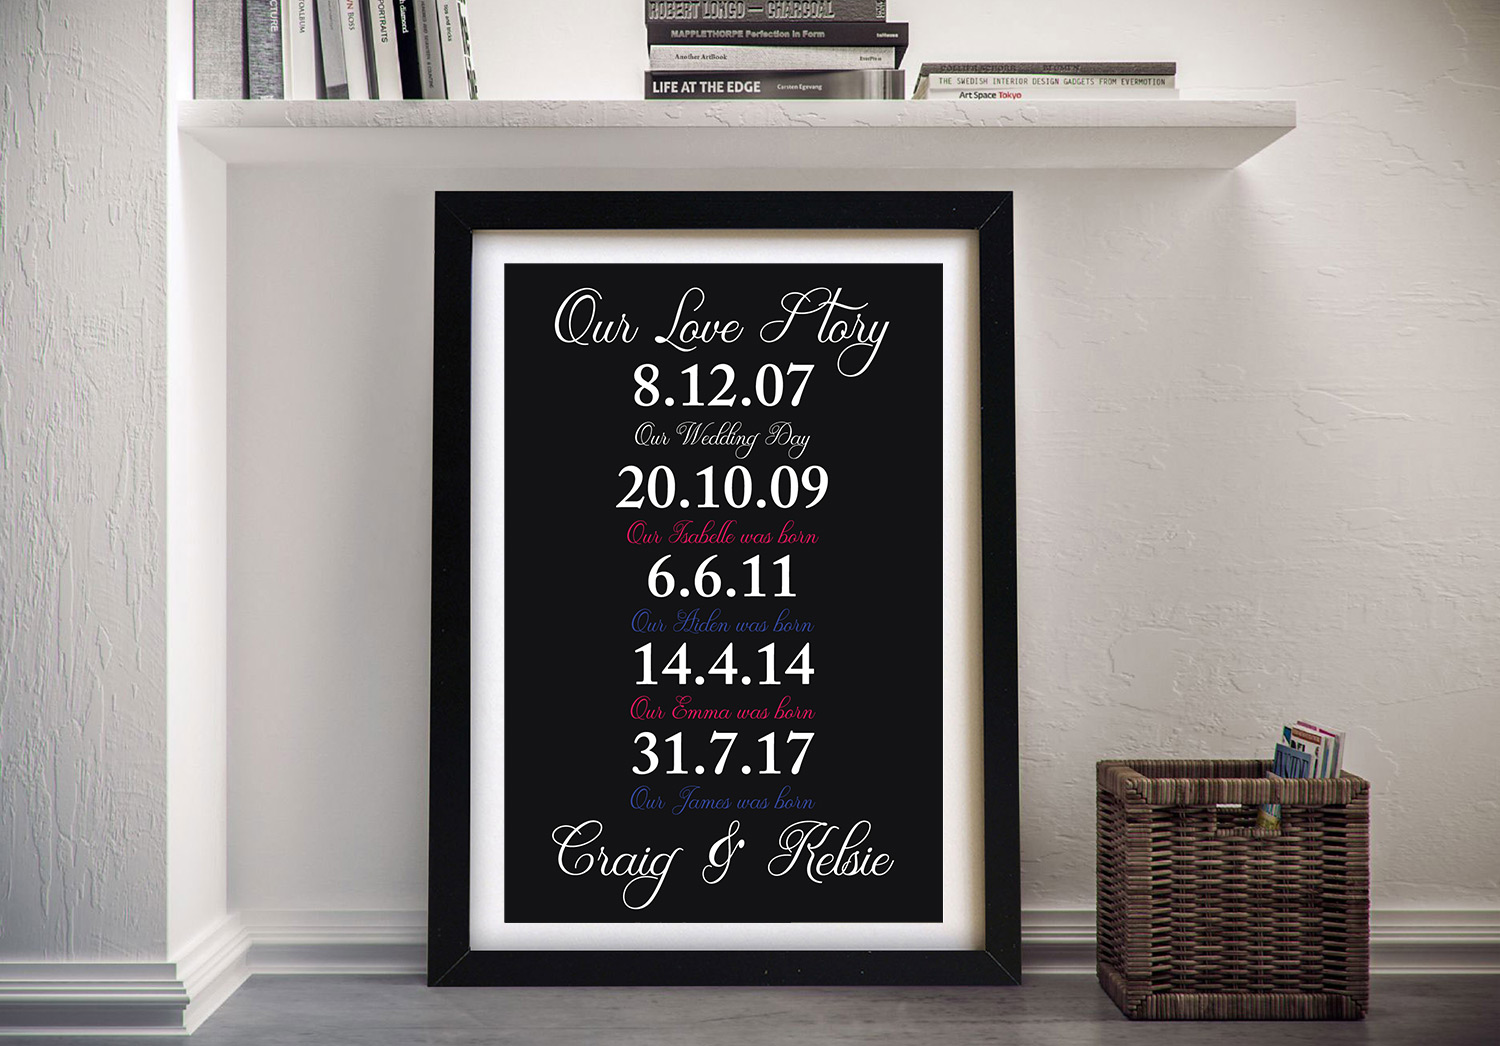 Love Story Framed Wall Art   Our Love Story